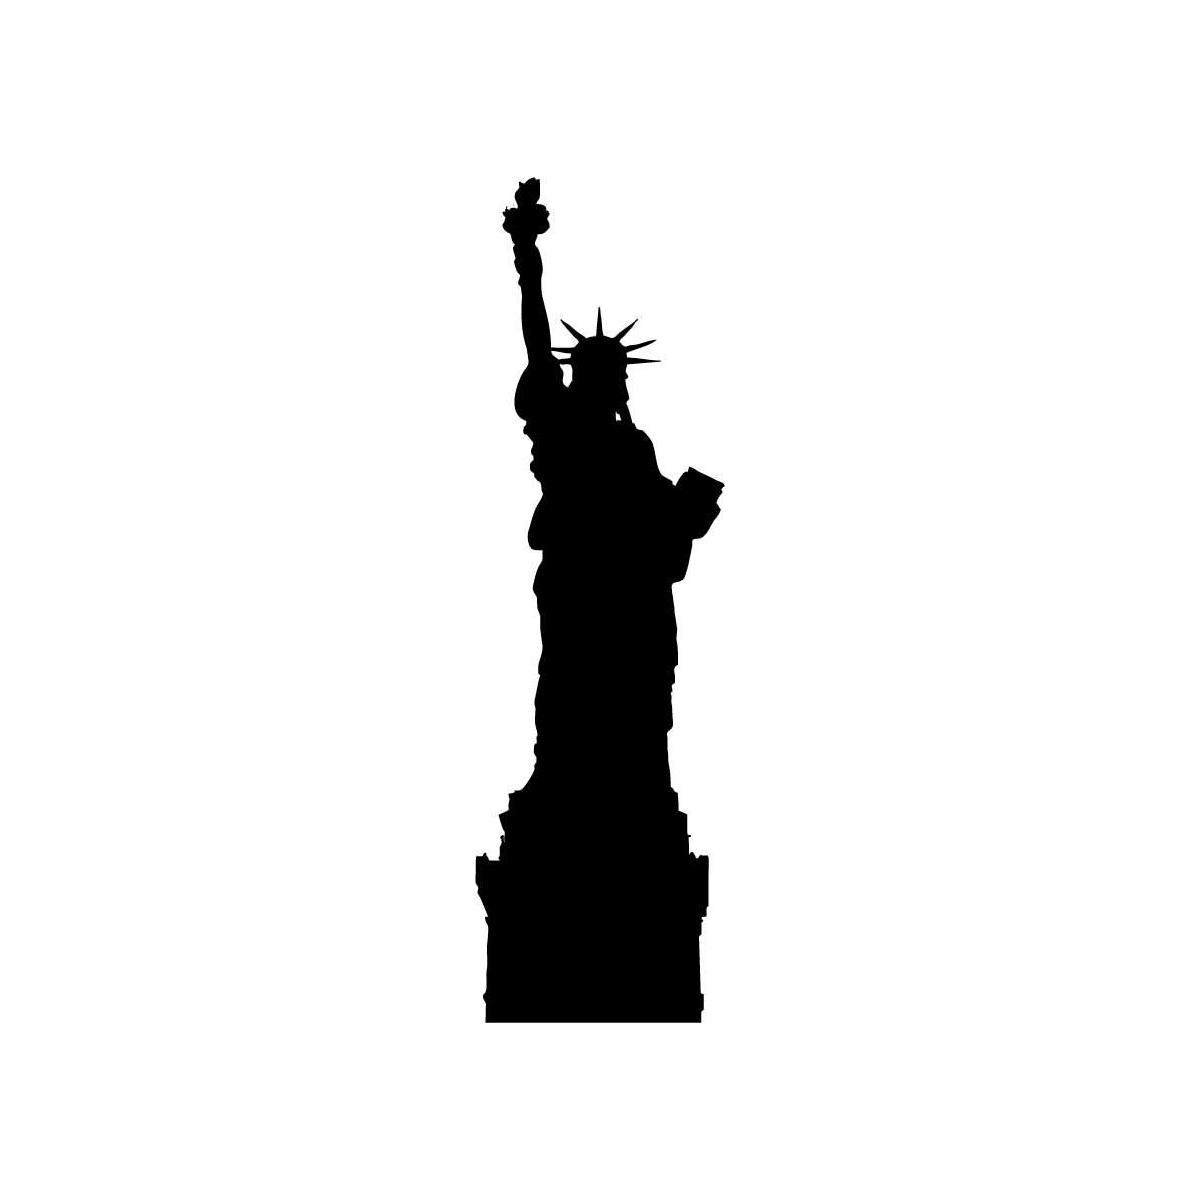 Image statue of liberty black and white clipart clip black and white download Free Statue Of Liberty Images Black And White, Download Free Clip ... clip black and white download